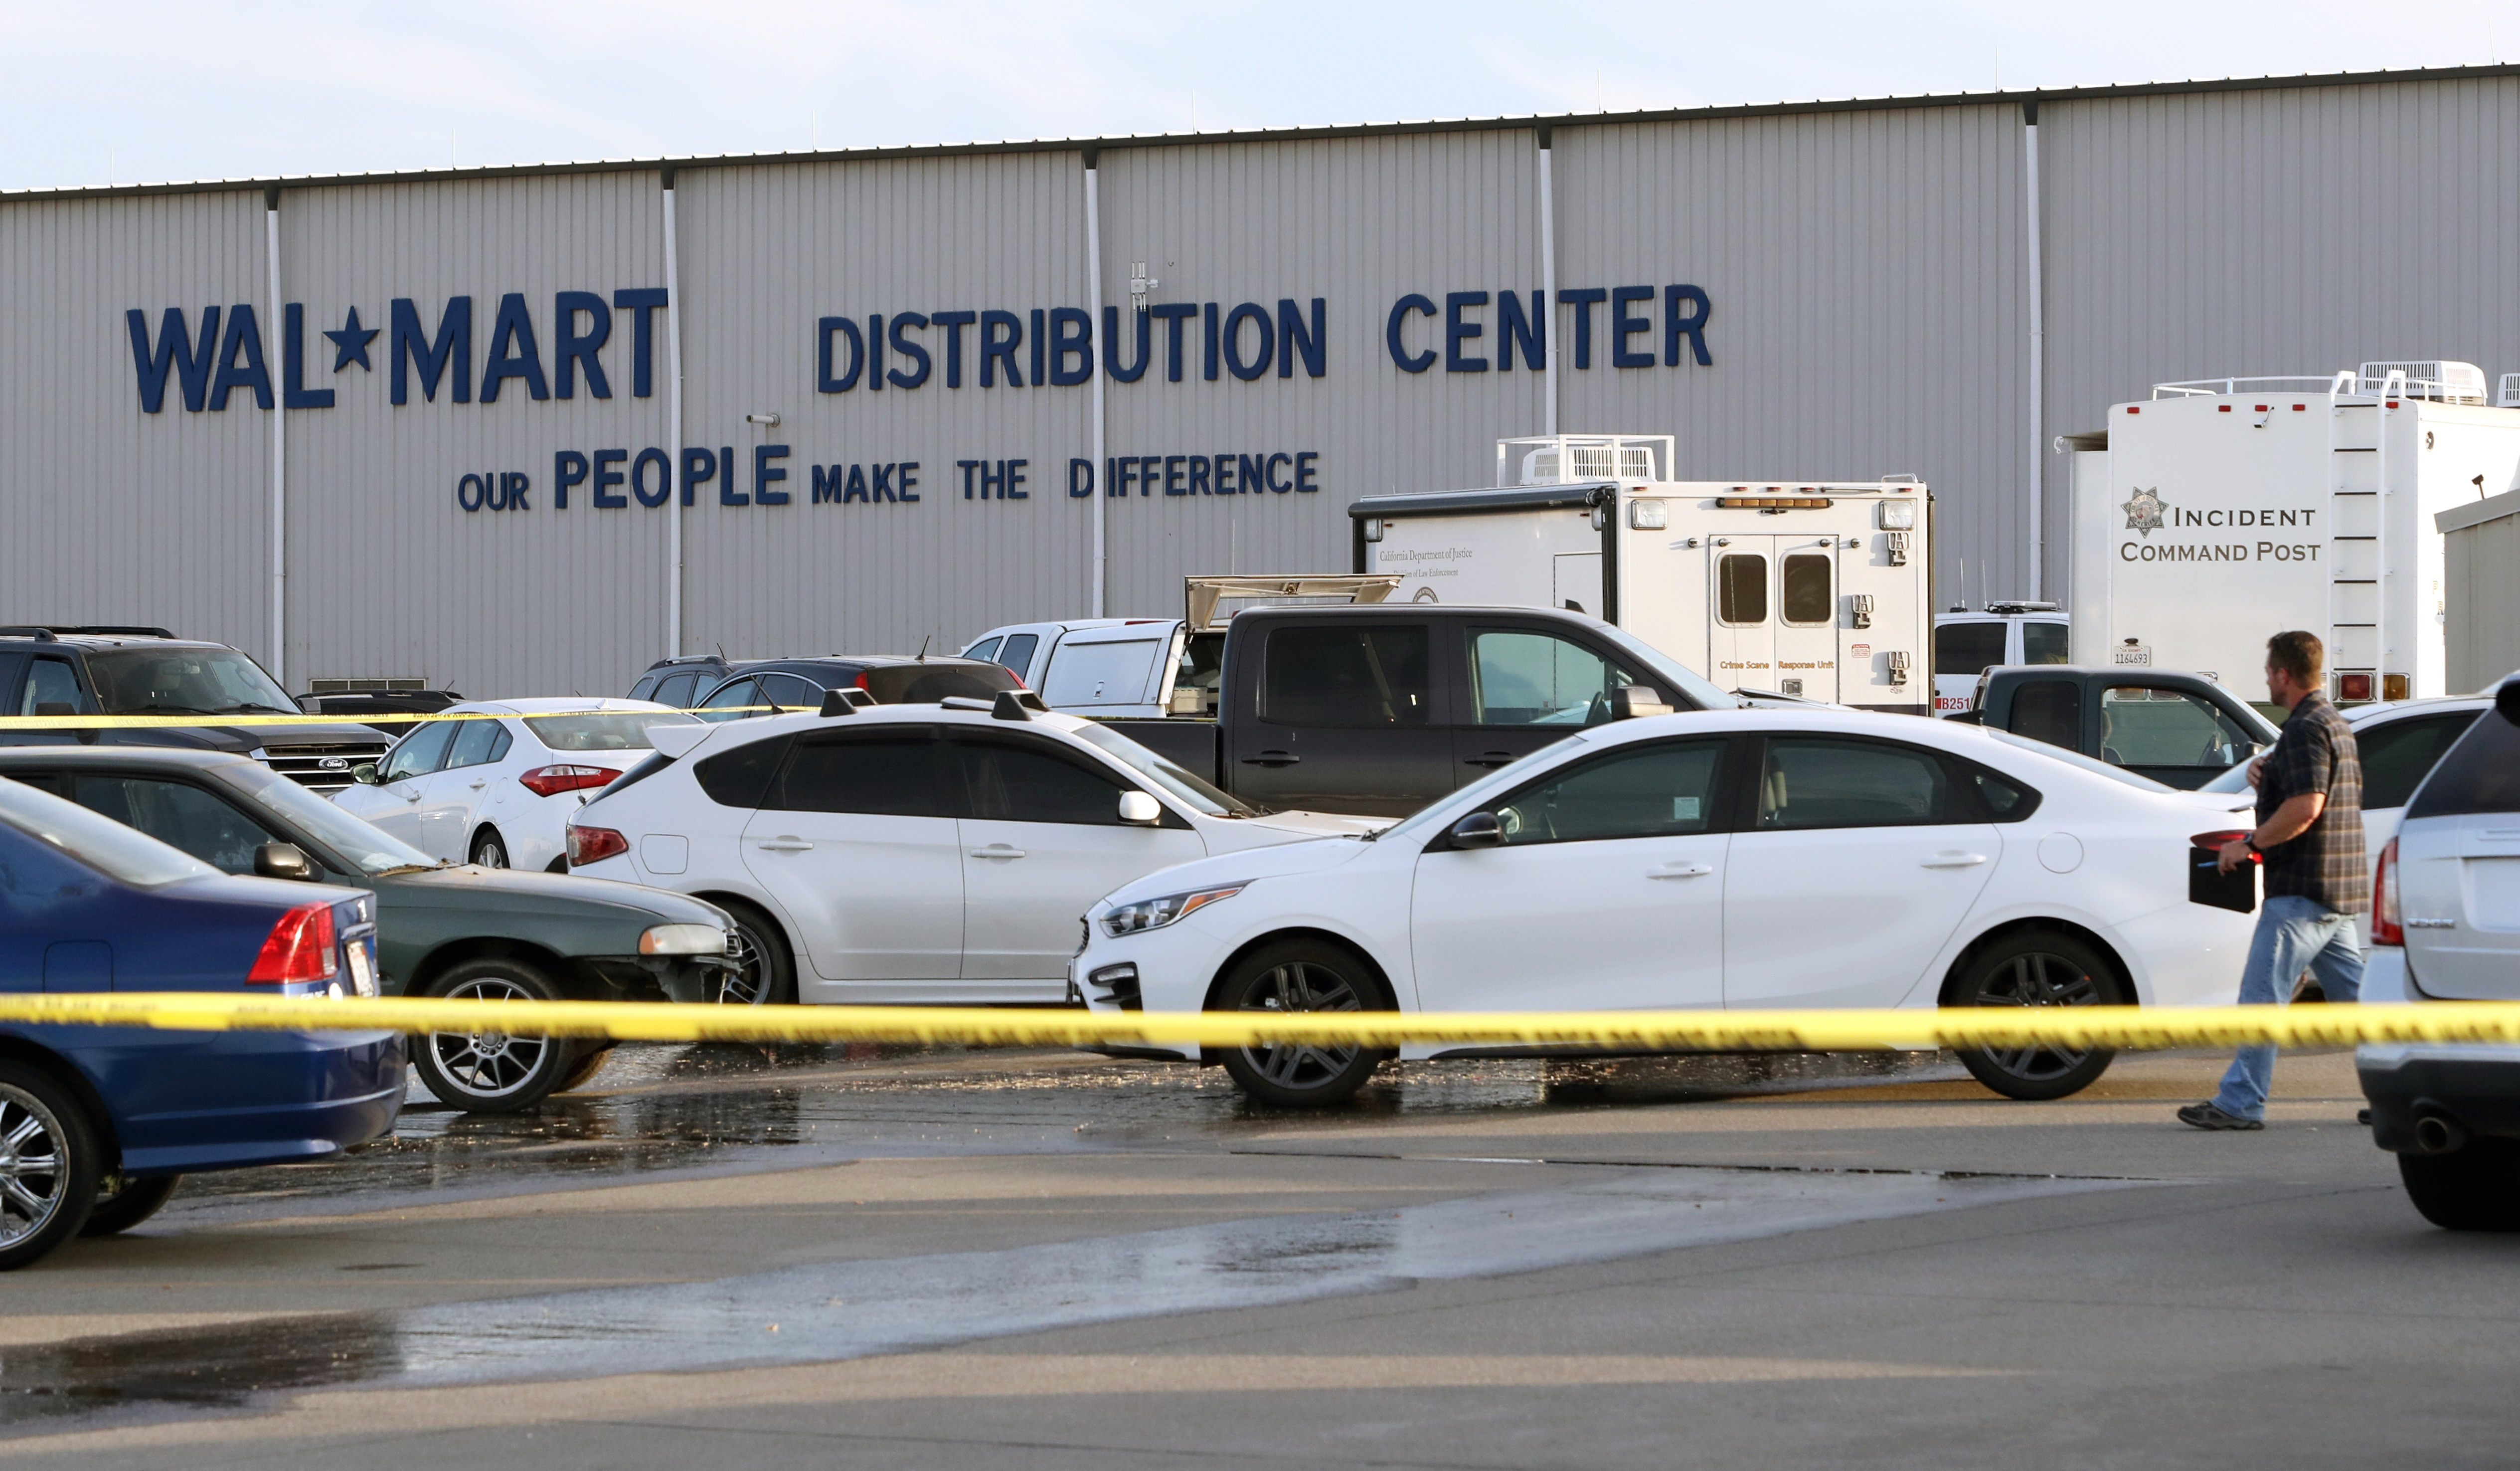 Crime tape blocks off a parking lot outside the Red Bluff Walmart Distribution Center where at least two people were killed, including a shooting suspect and an employee, and four were injured, June 27, 2020, in Red Bluff, Calif.